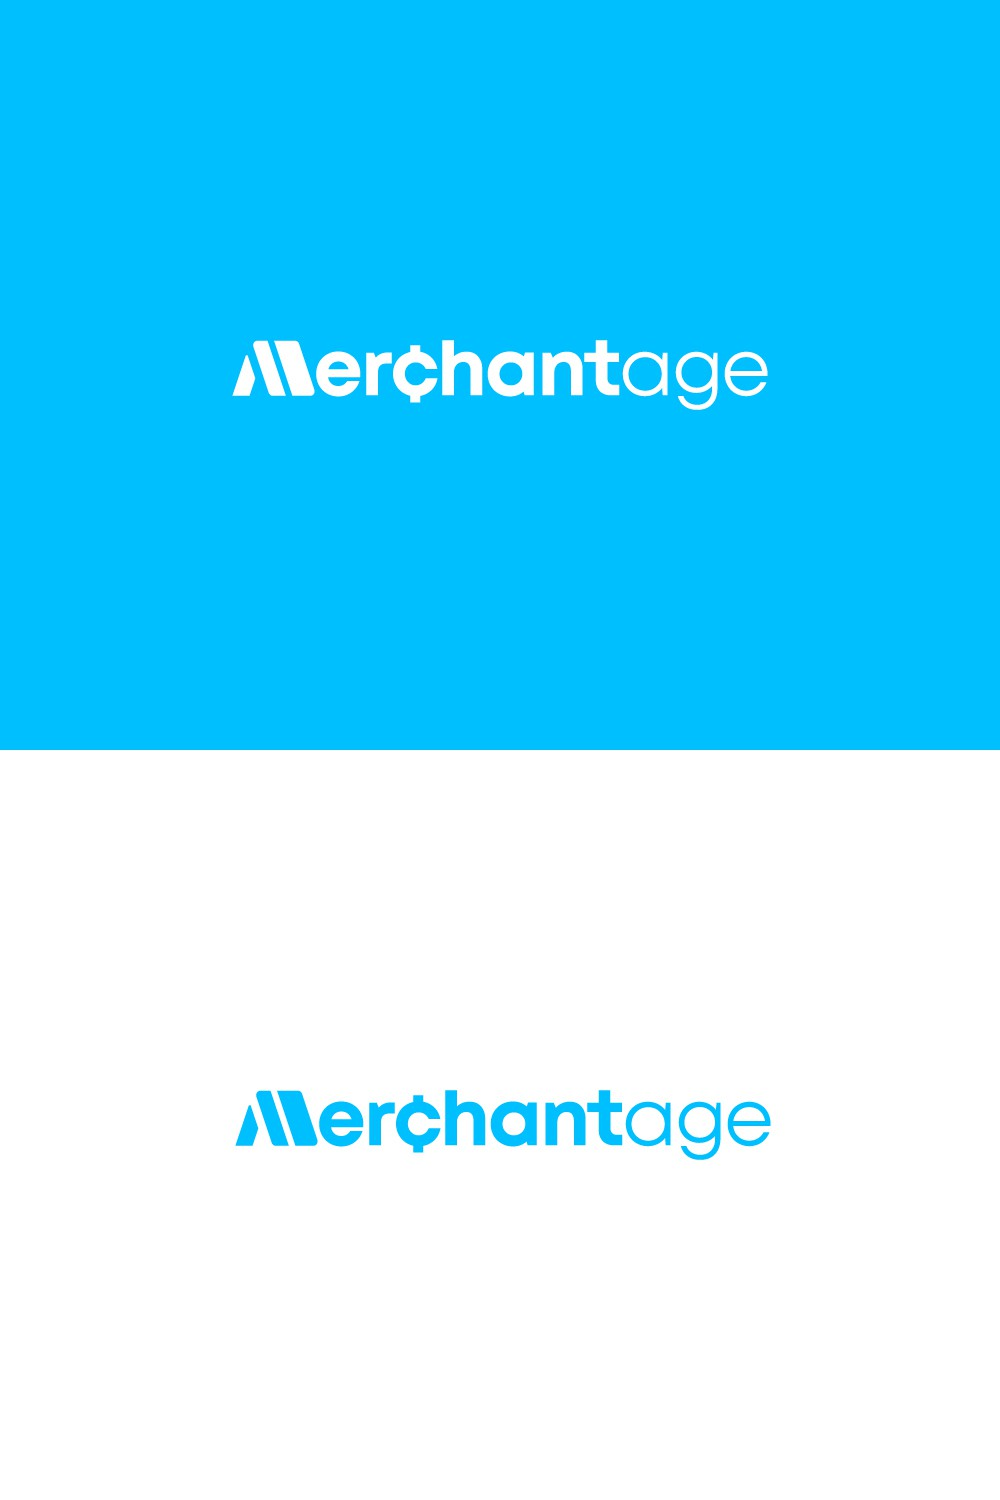 Logo for a merchant / credit card processing company.